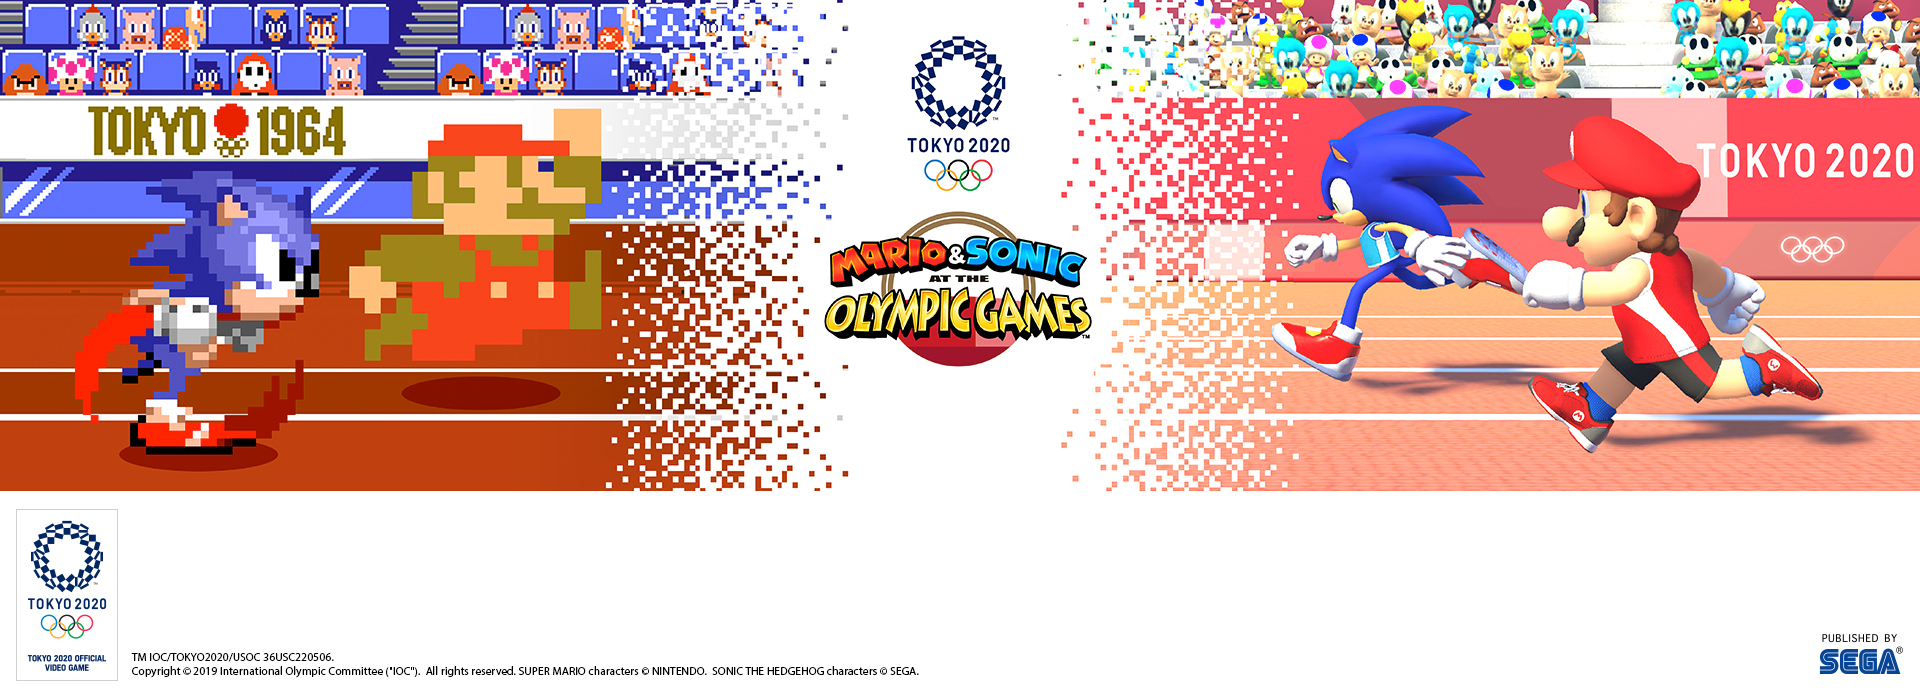 Mario And Sonic At The Olympic Winter Games 2020.Mario Sonic At The Olympic Games Tokyo 2020 Reveals